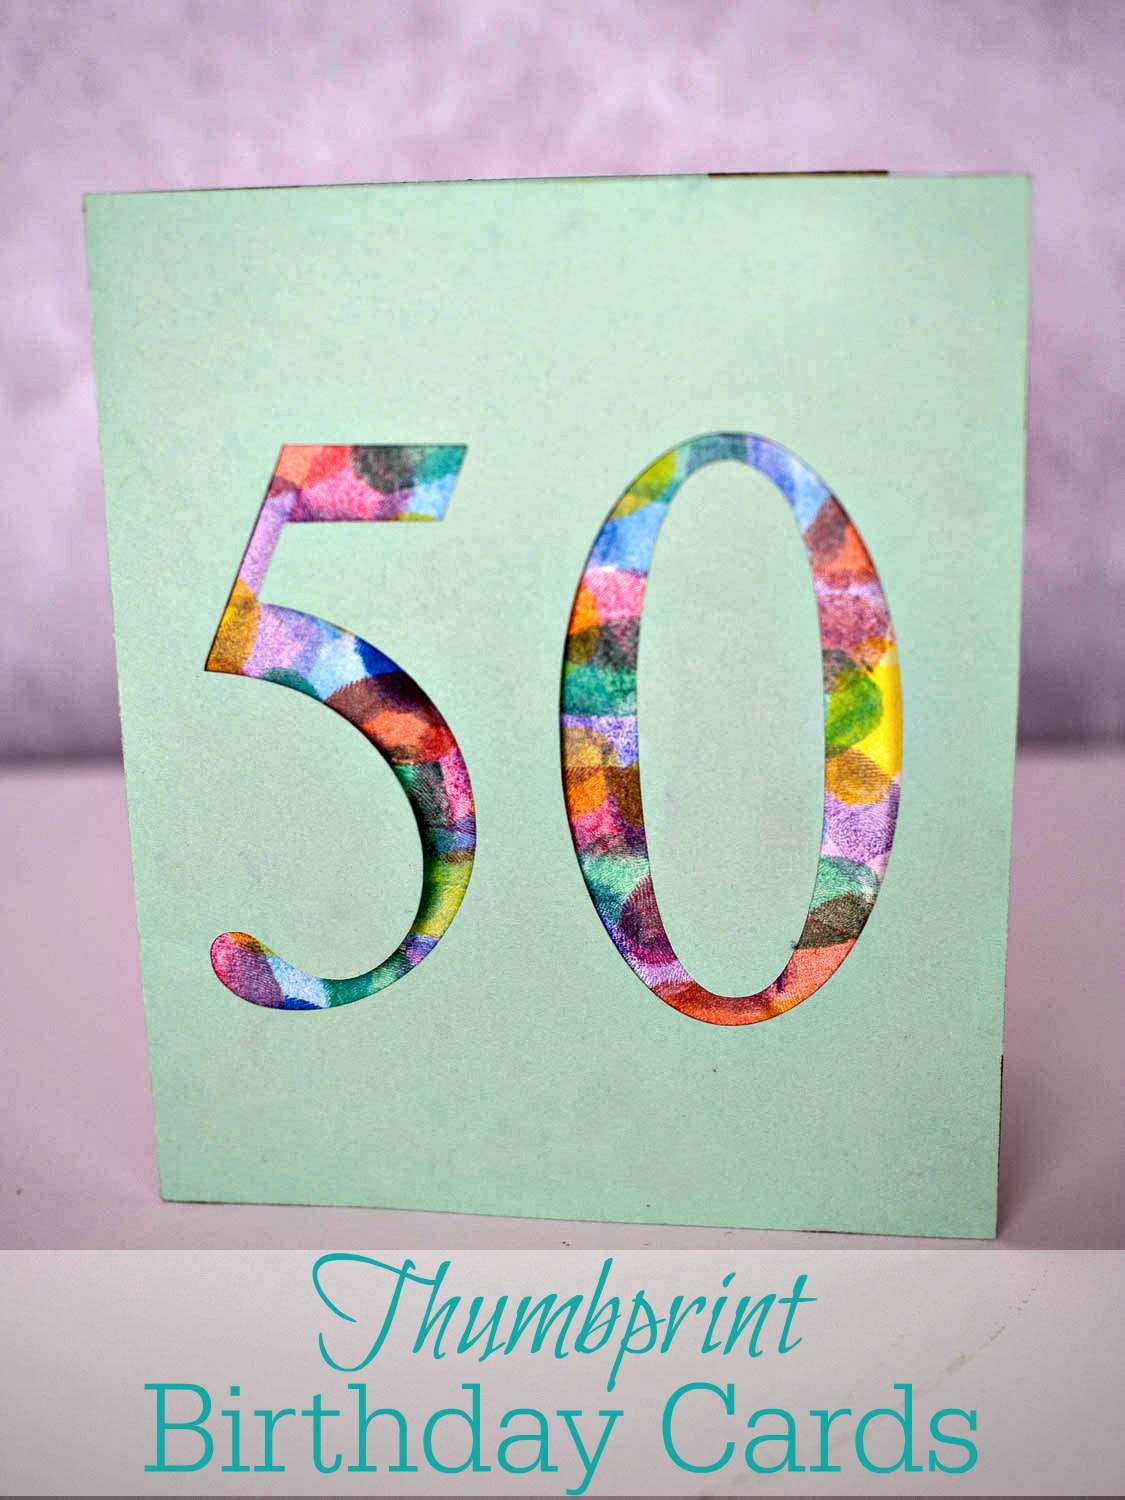 Thumbprint Birthday Cards - These cute cards are made by cutting out numbers and decorating the cut outs with thumbprints.  A cute way to personalize a card!